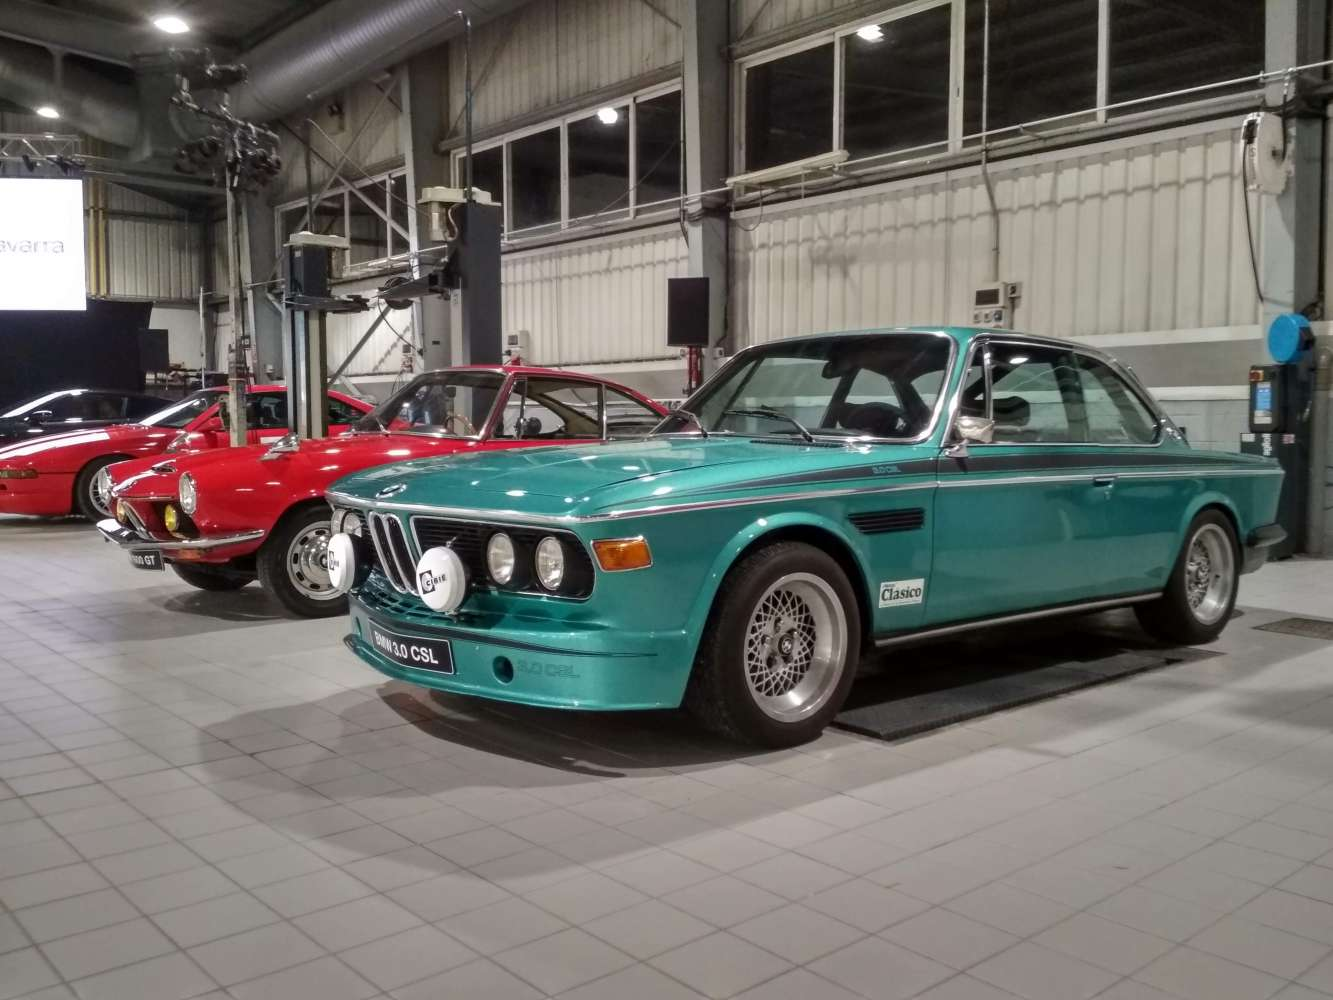 BMW 3,0 Csl E9 127,000 Kms NorClassics Collection